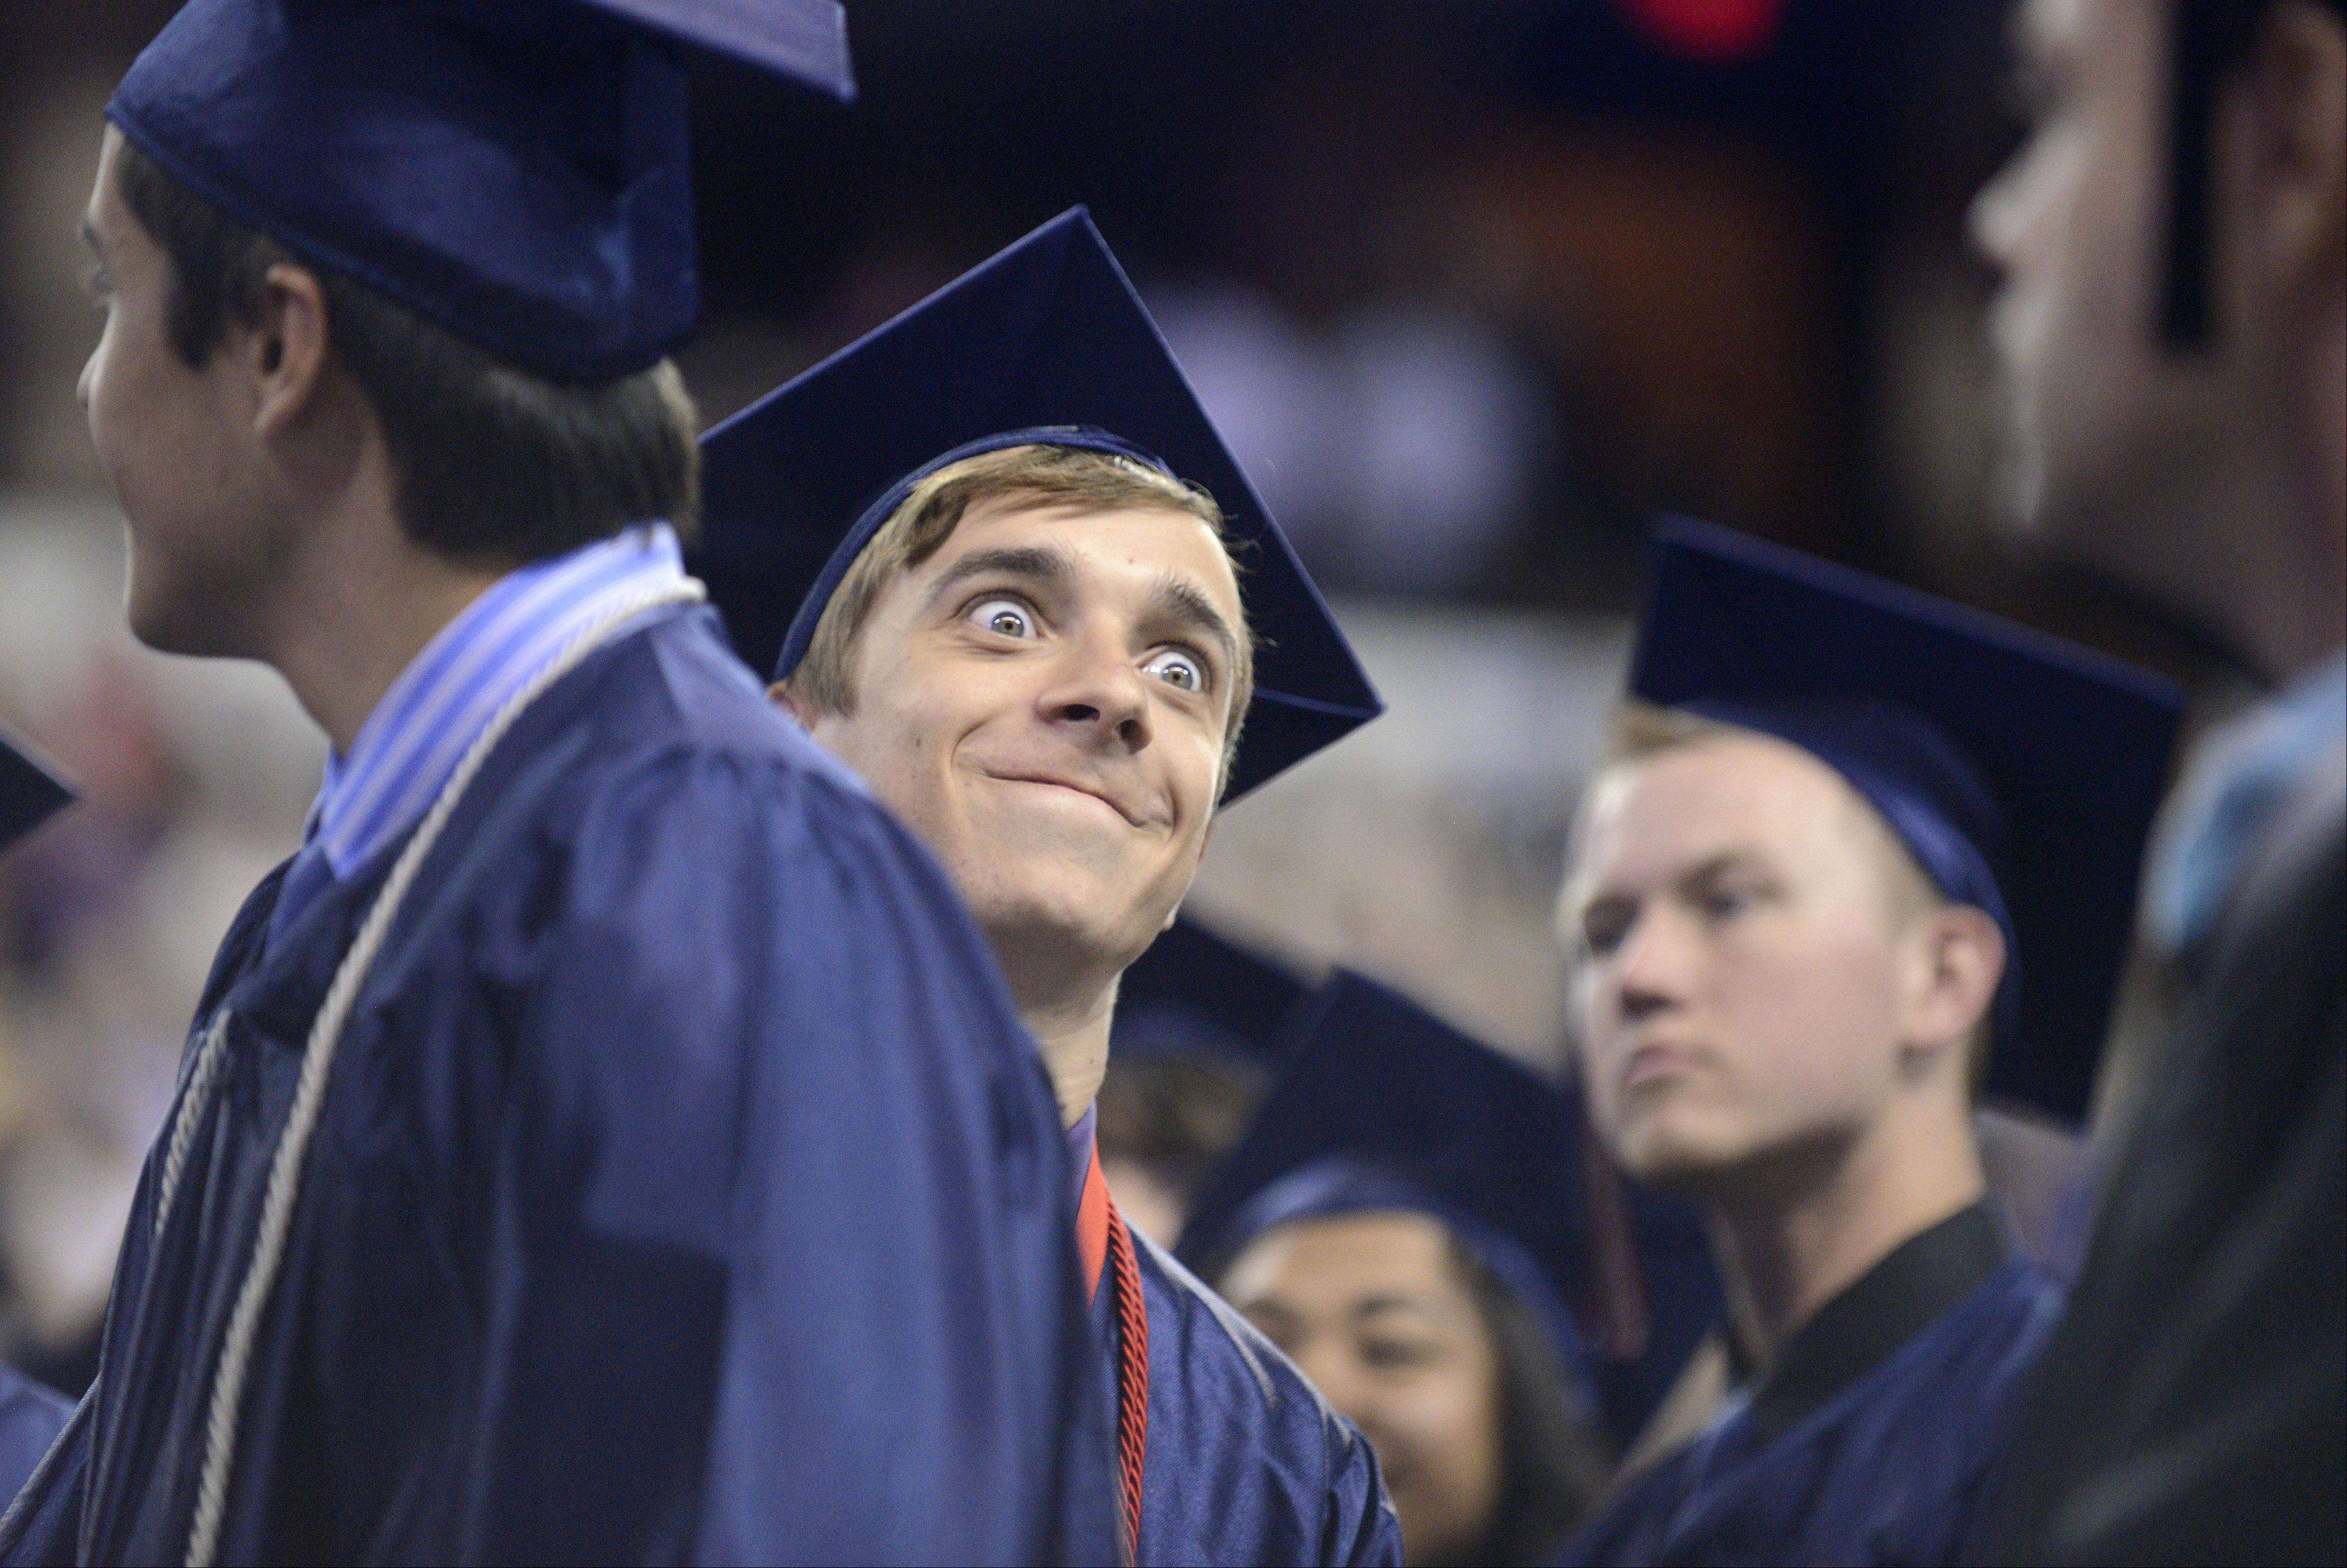 Shane Spikes has fun during South Elgin High School's commencement ceremony at the Sears Centre in Hoffman Estates on Saturday.